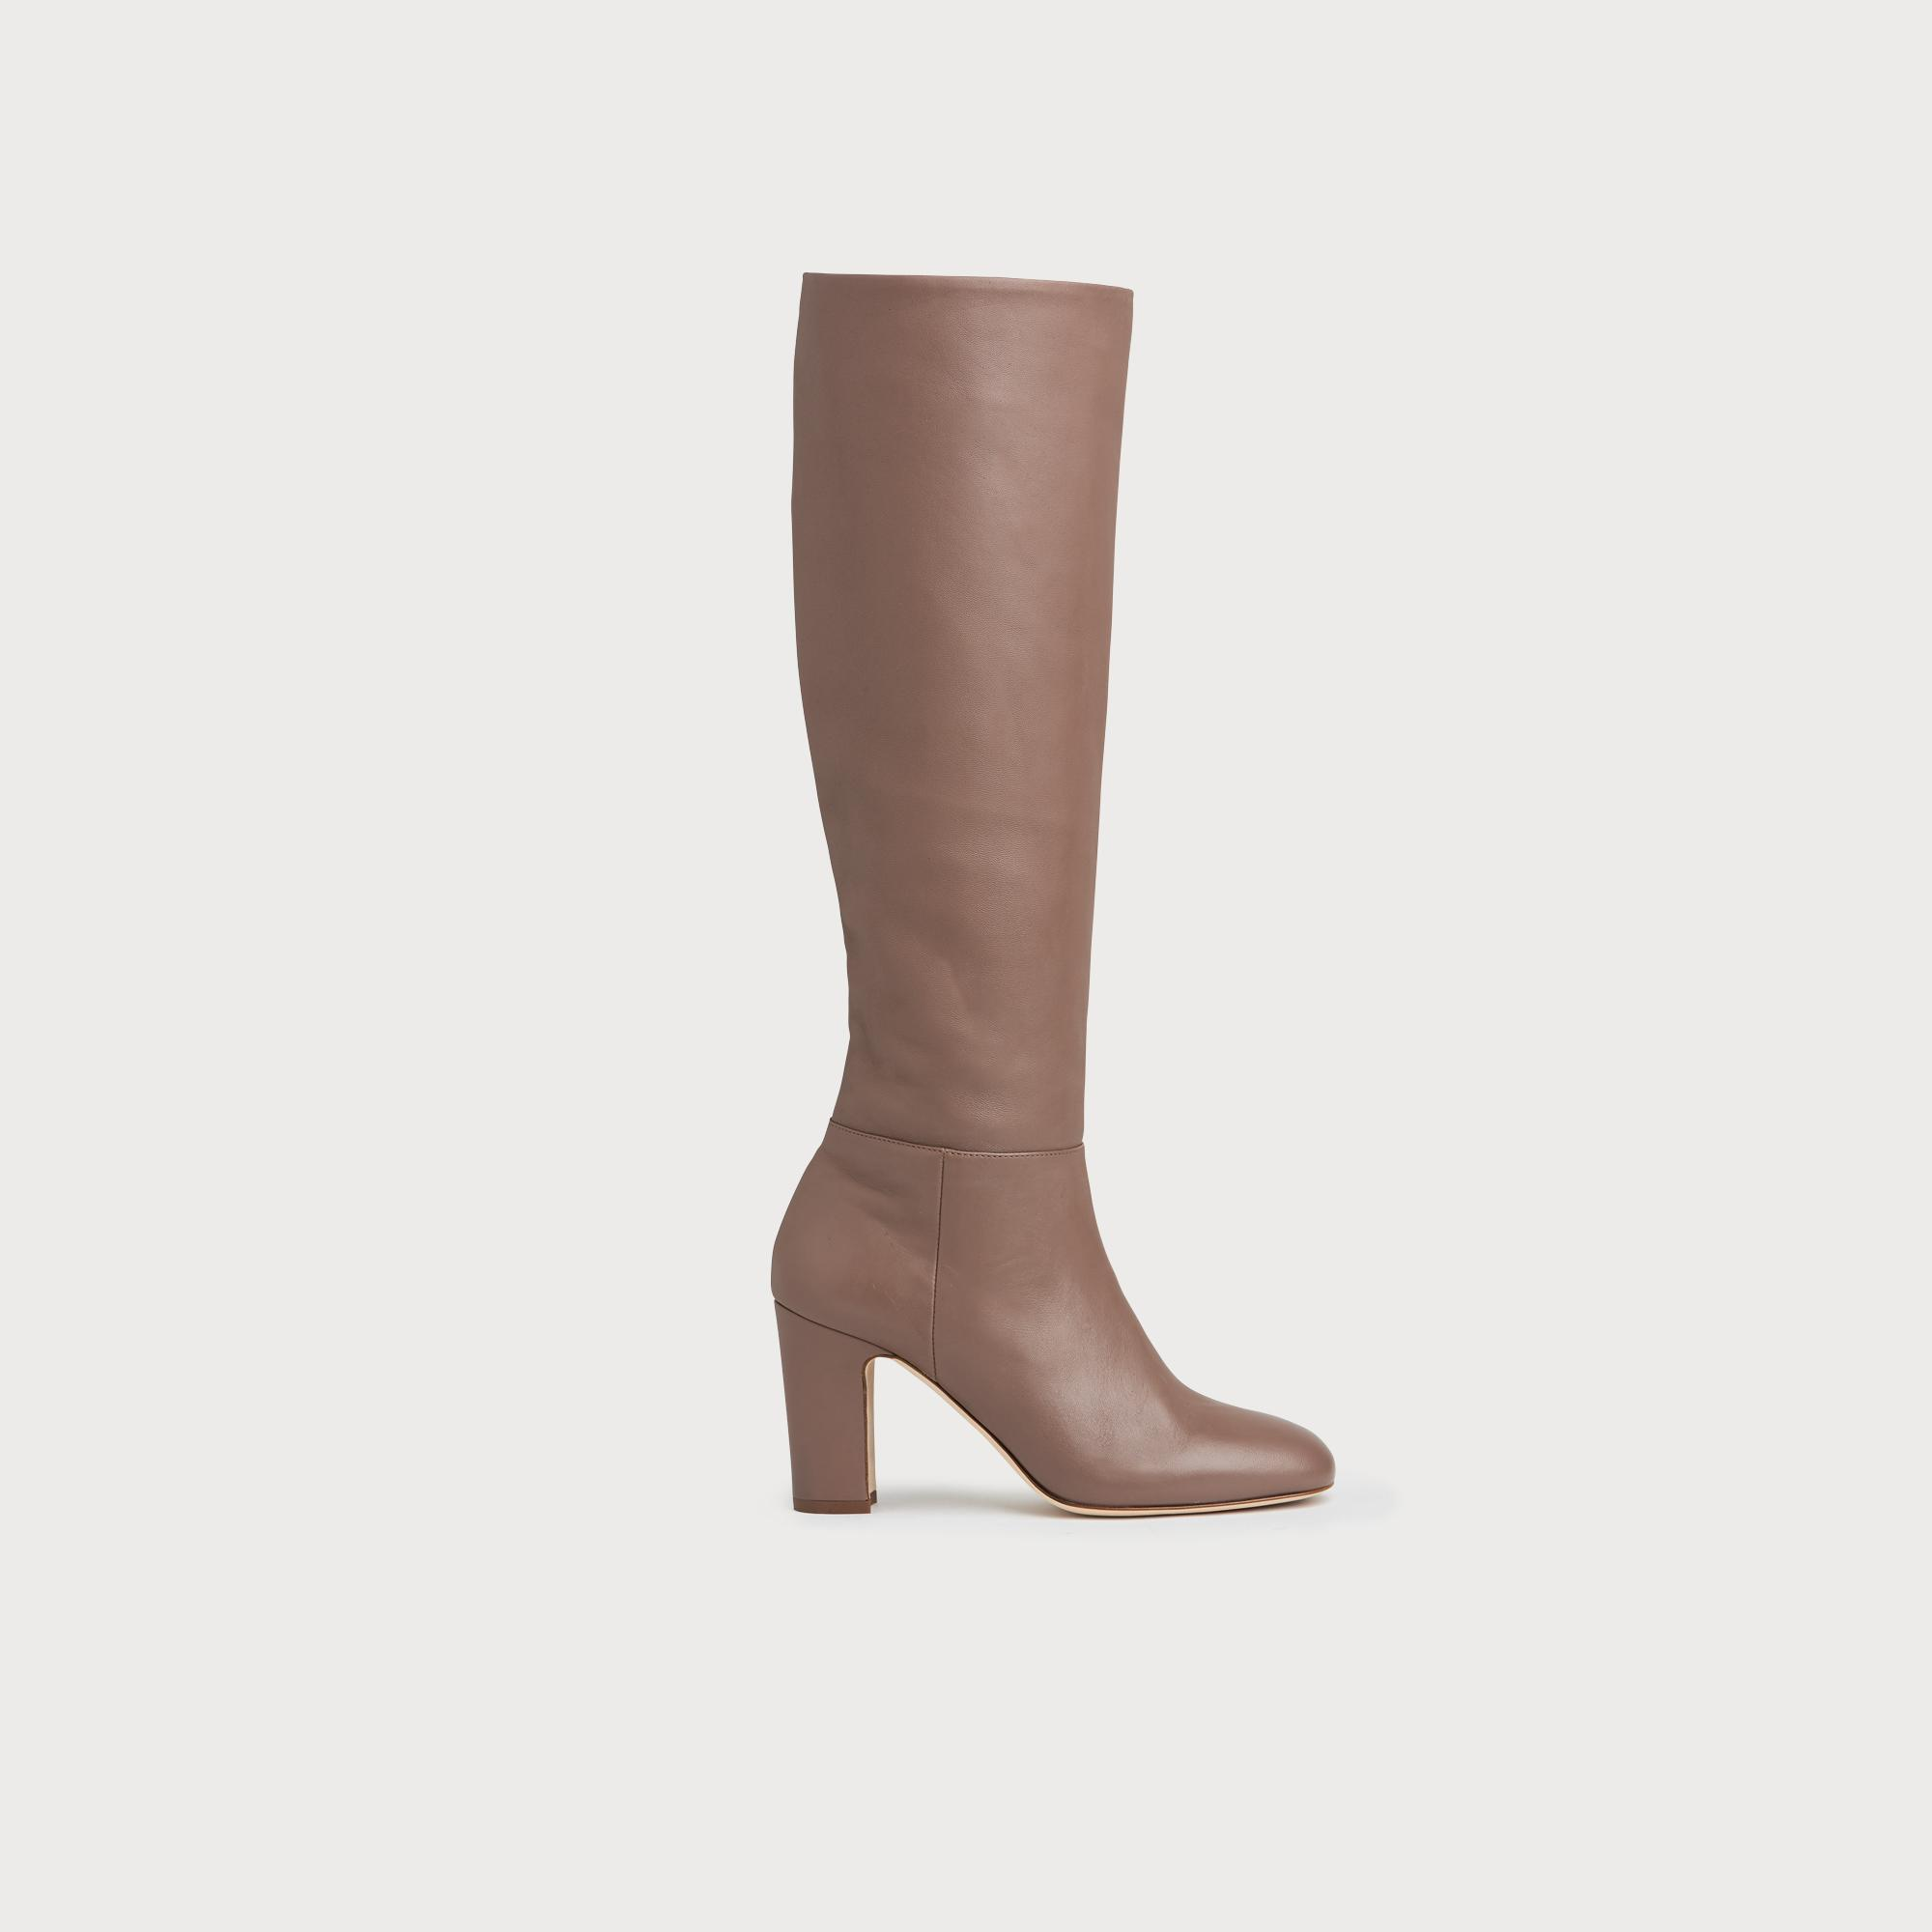 Kristen Nude Rose Nappa Leather Knee Boots